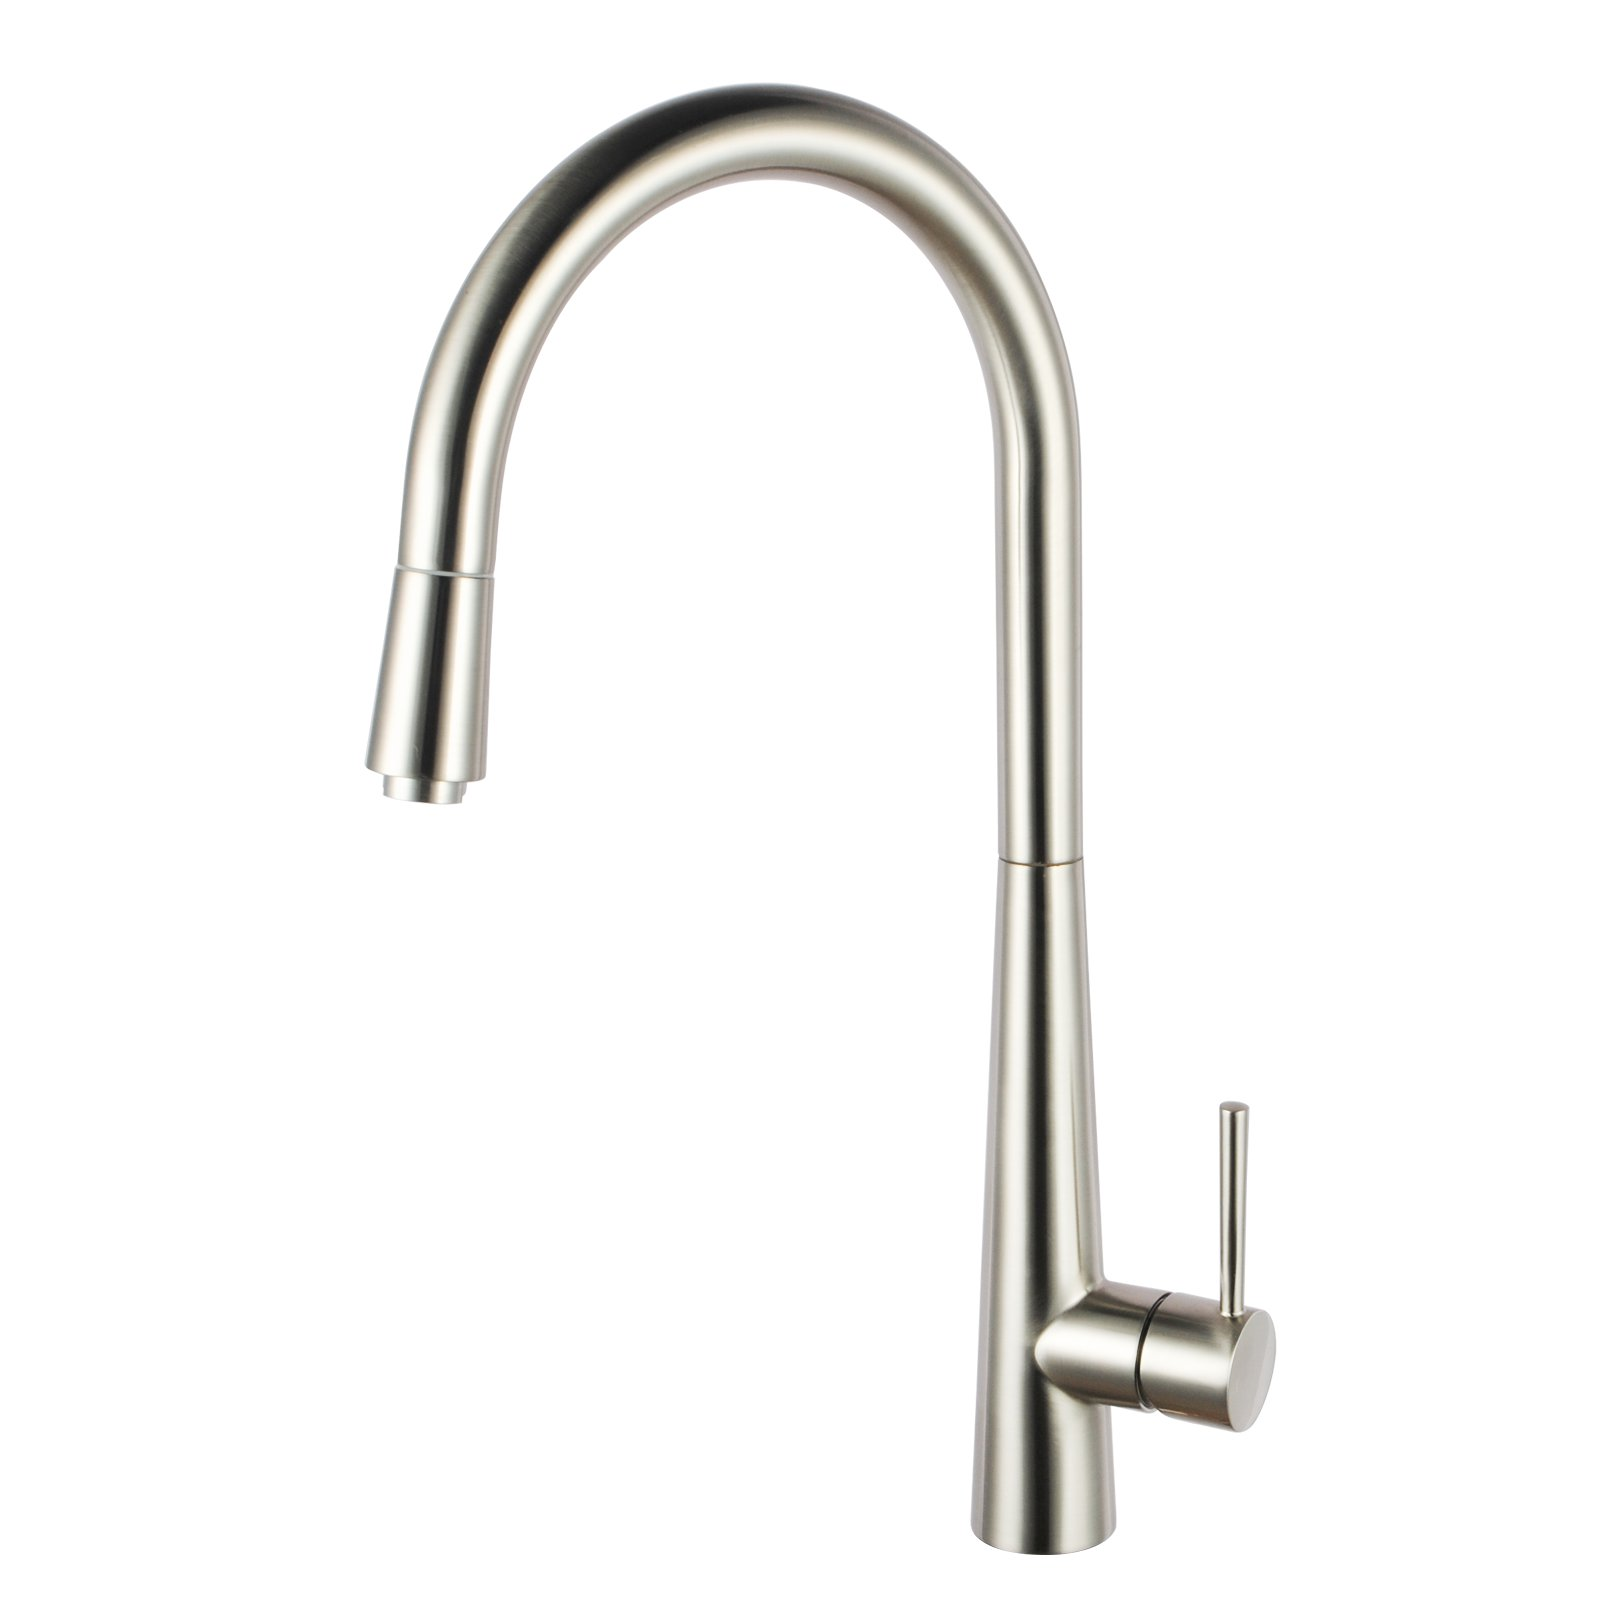 buy kitchen sink aid range hood round chrome pull out mixer tap bathroom taps h m s remaining